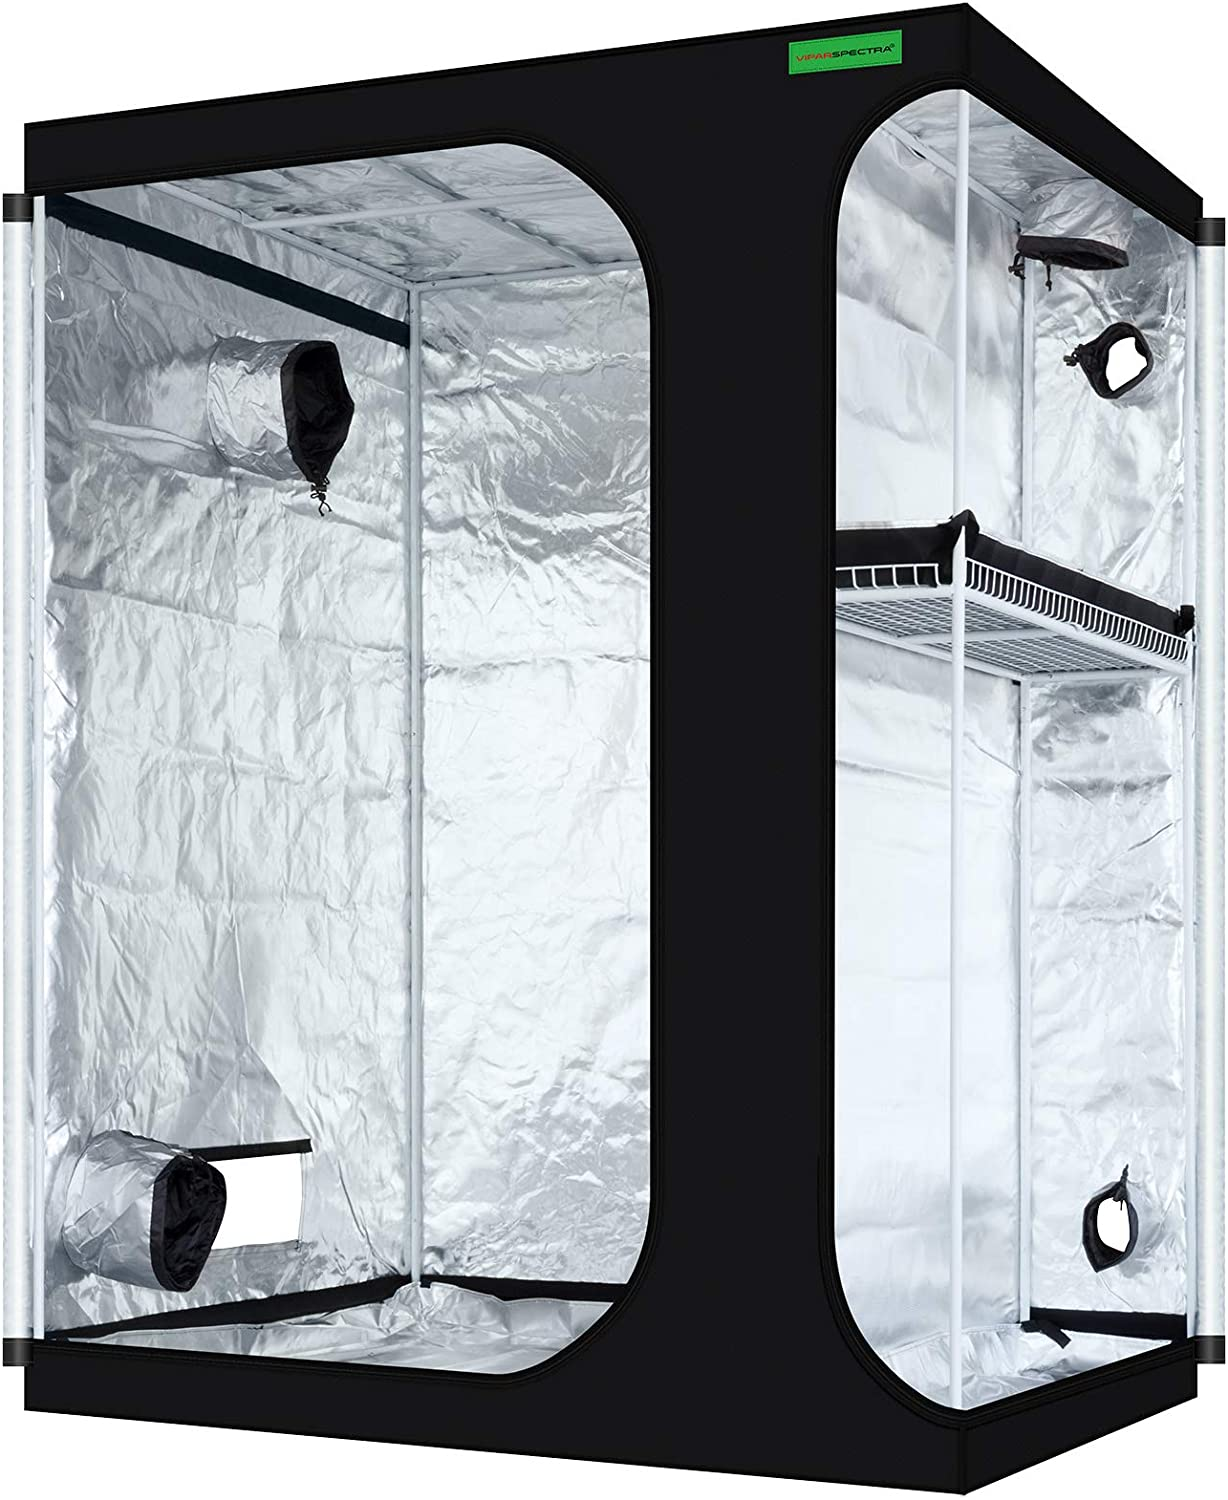 """VIPARSPECTRA 2-in-1 60""""x48""""x80"""" Mylar Hydroponic Grow Cabinet"""